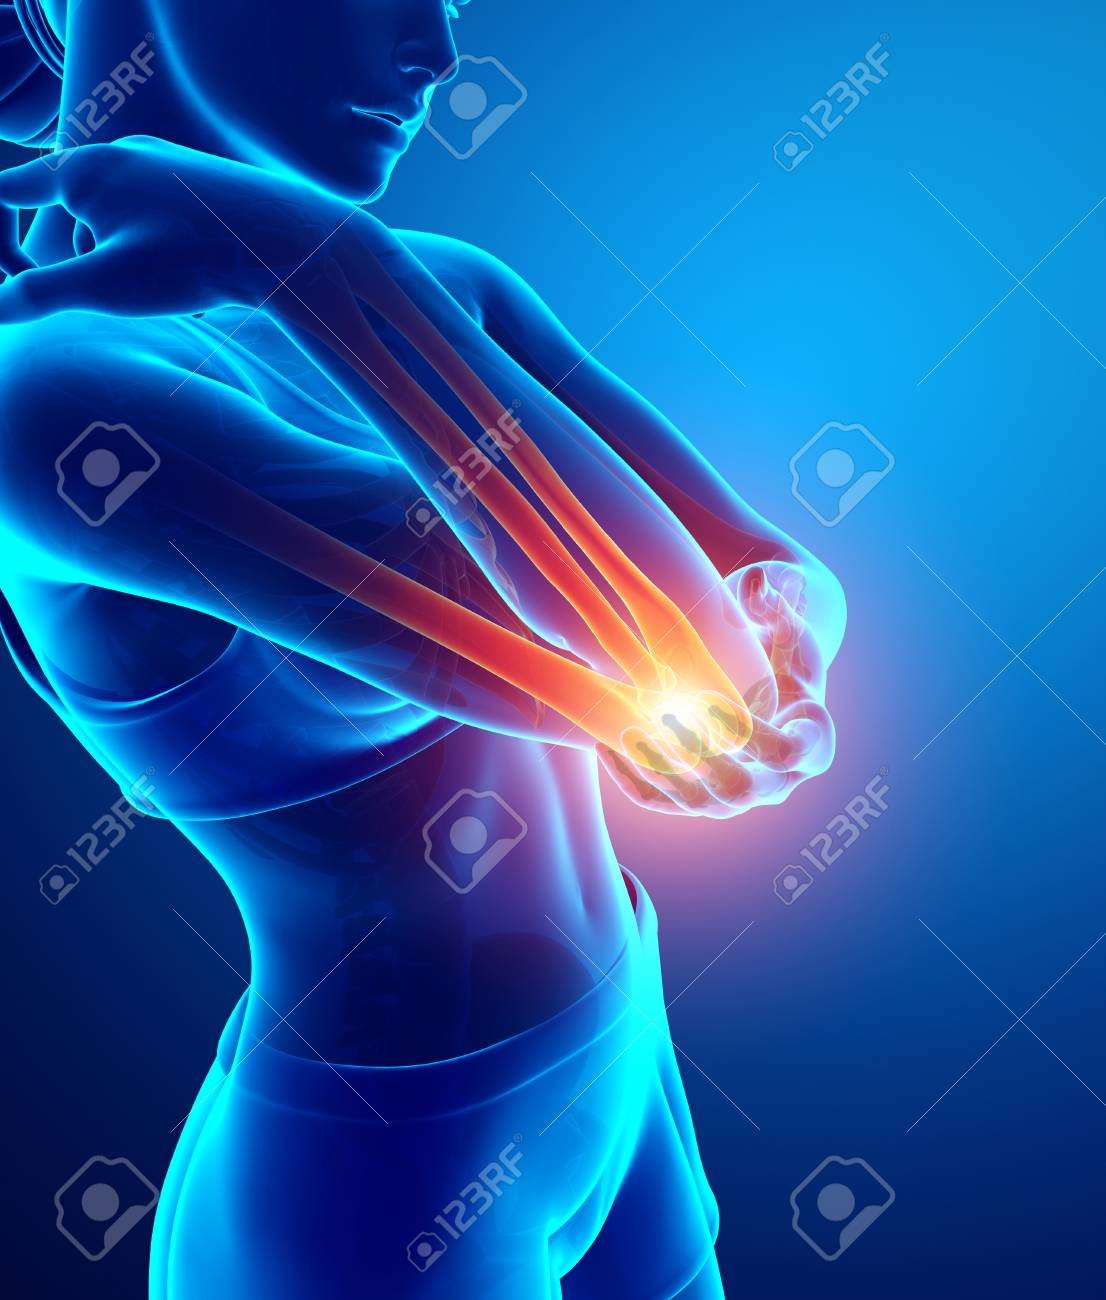 3d Illustration Of Women Feeling Elbow Pain Stock Photo, Picture And ...